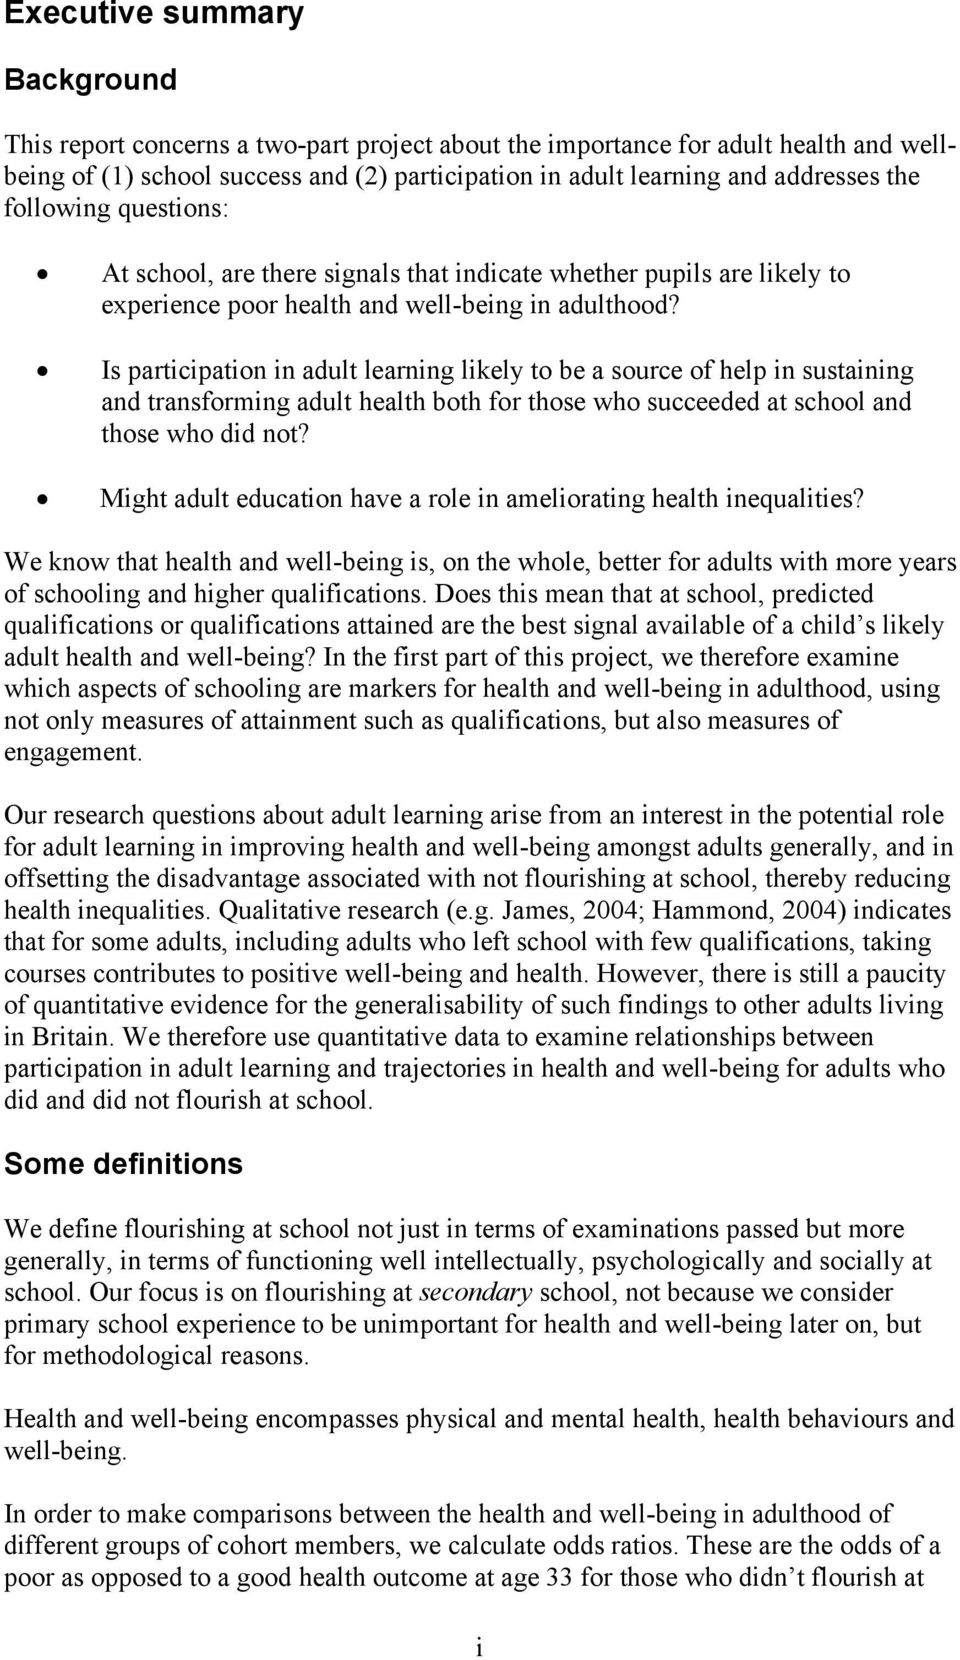 Is participation in adult learning likely to be a source of help in sustaining and transforming adult health both for those who succeeded at school and those who did not?